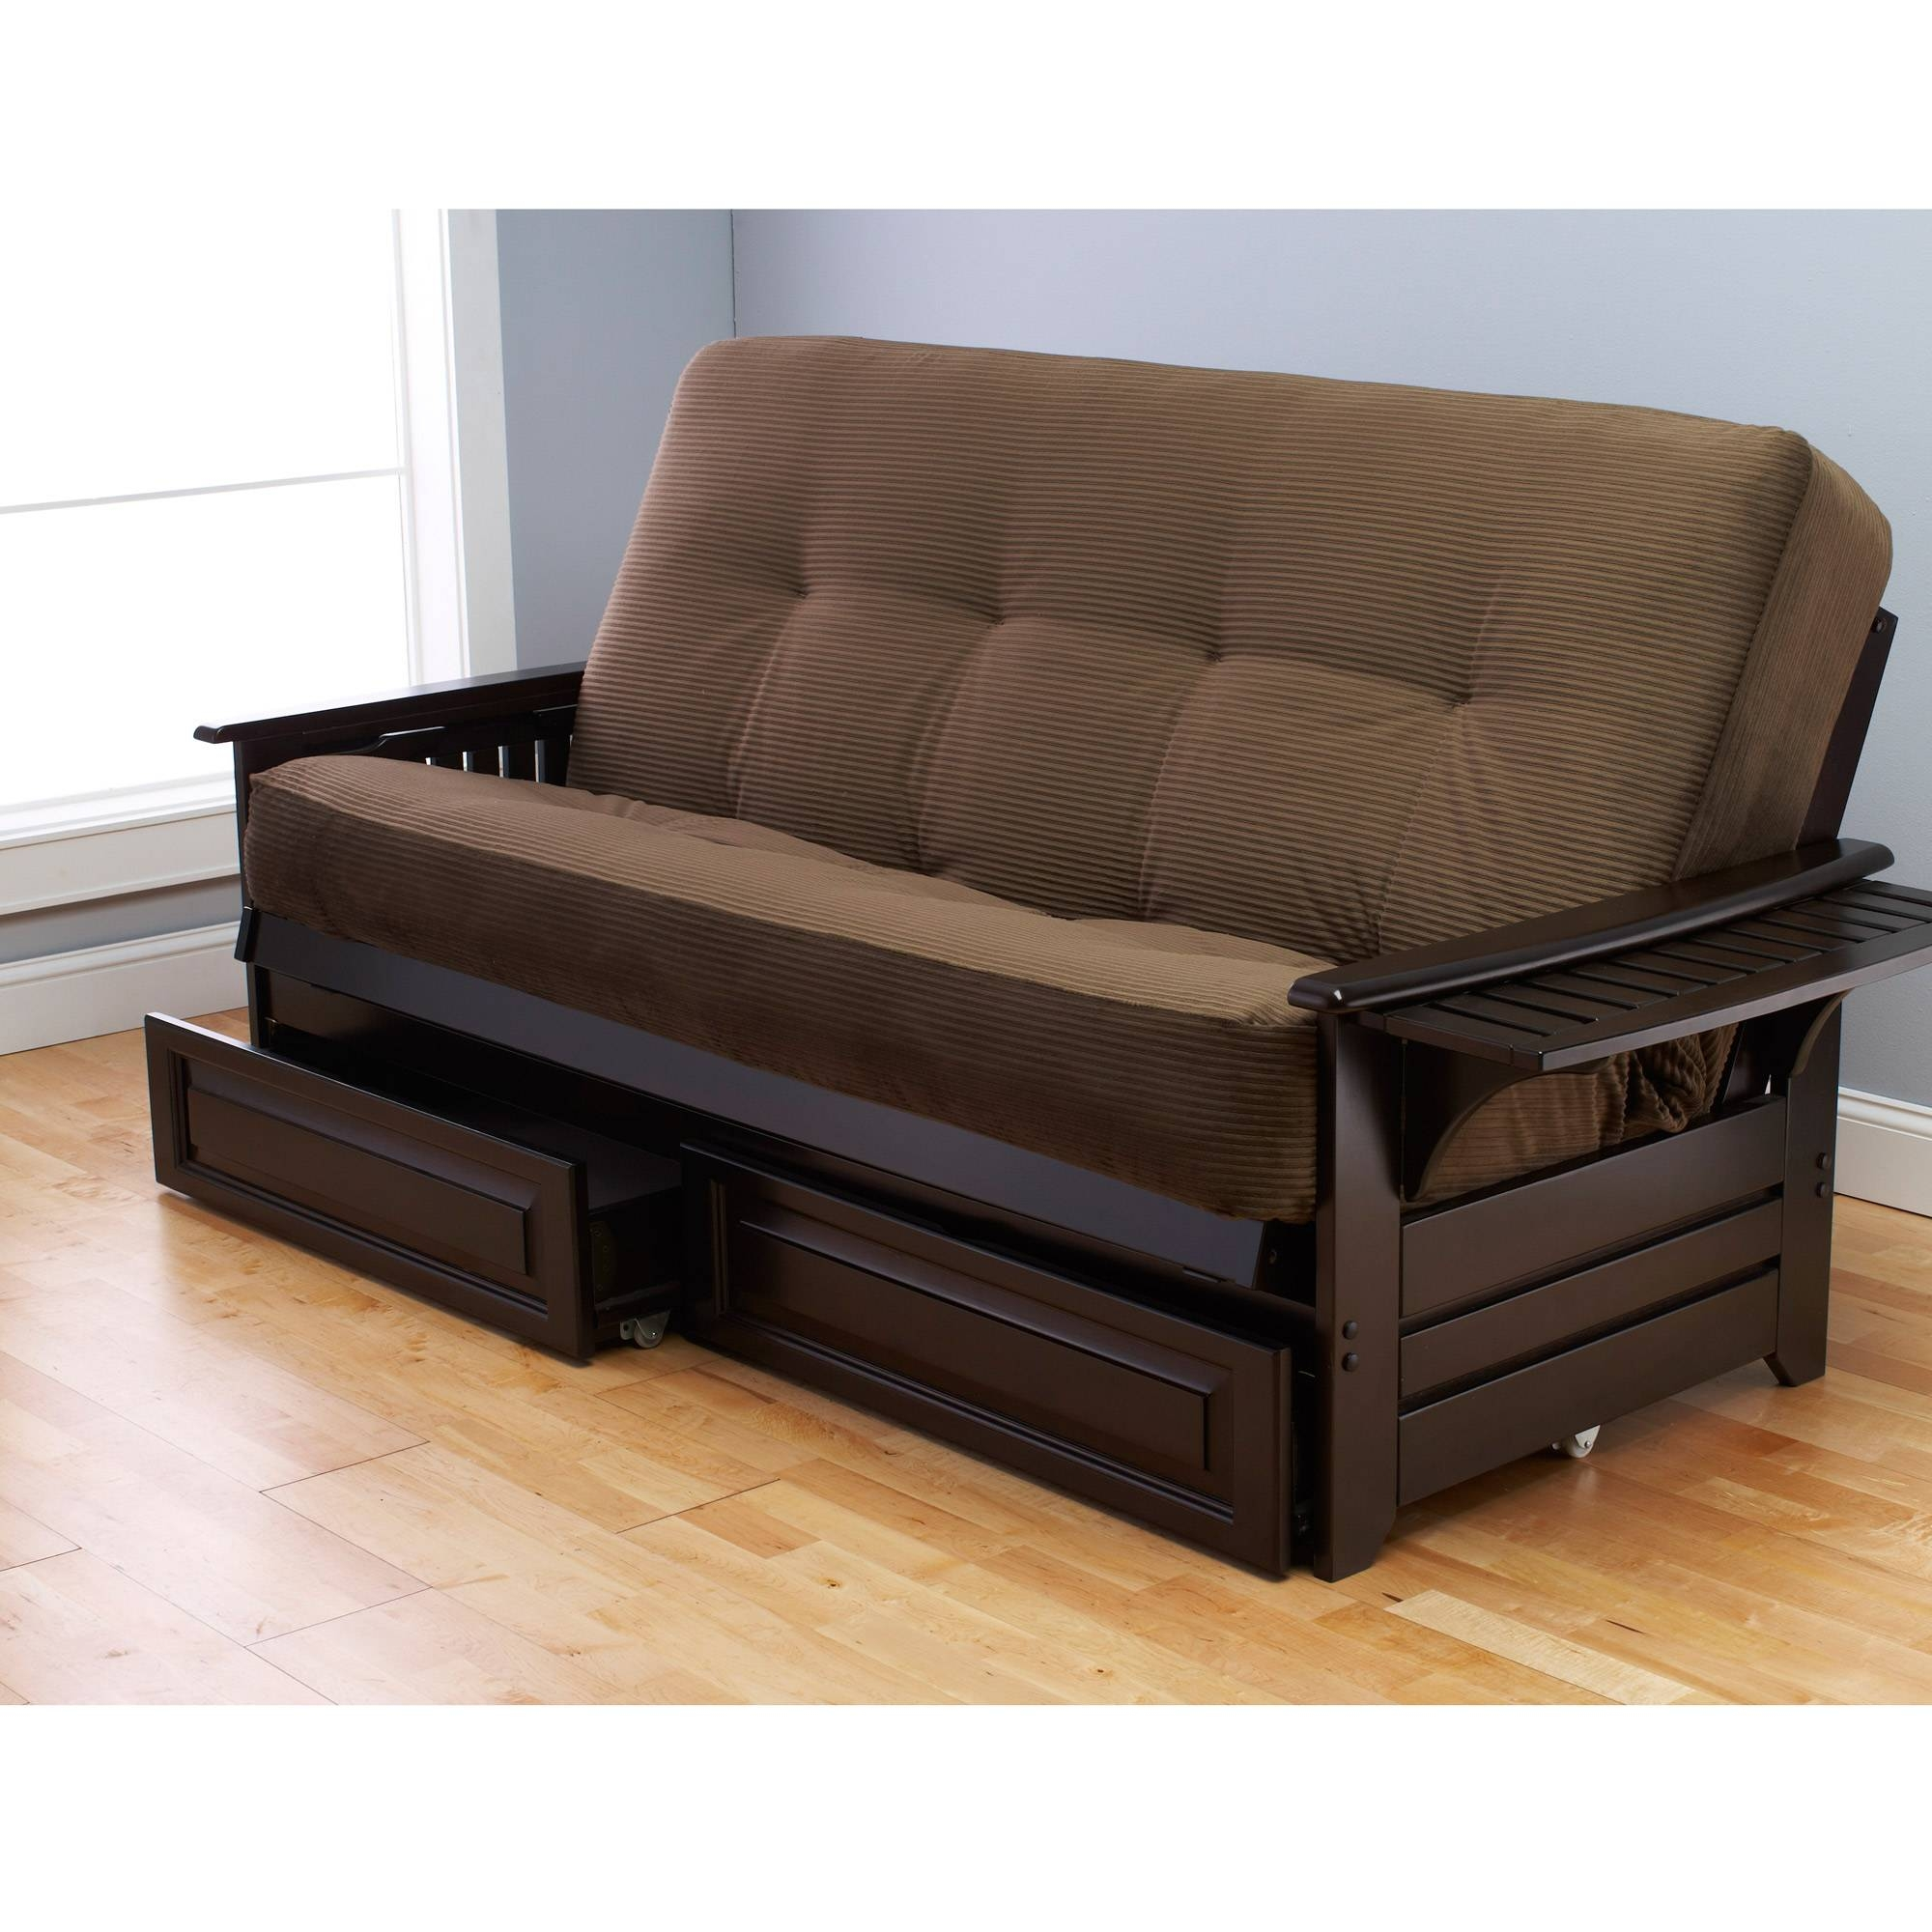 Best Sofa Bed Mattress Canada | Bed Furniture Decoration inside Cushion Sofa Beds (Image 1 of 30)